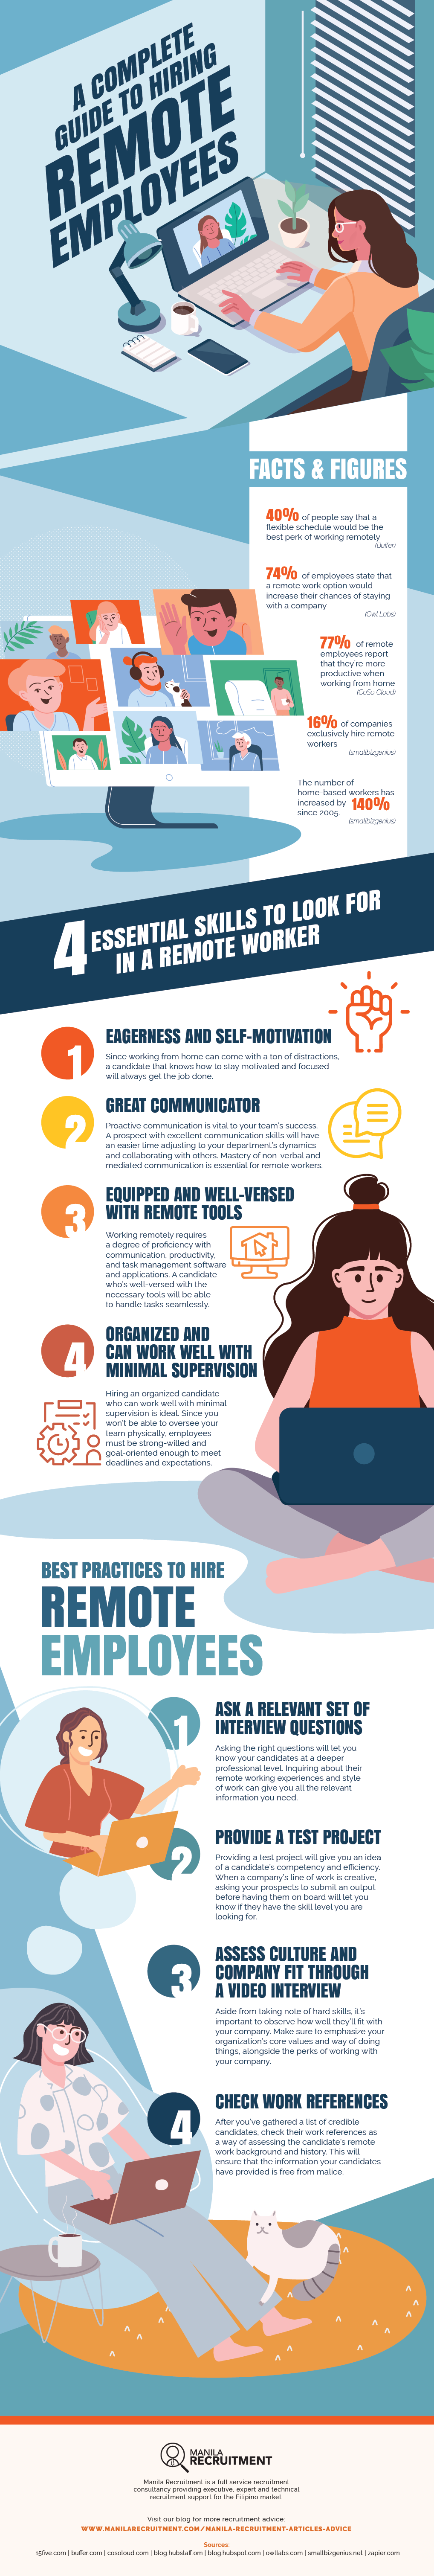 A Complete Guide to Hiring Remote Employees #infographic